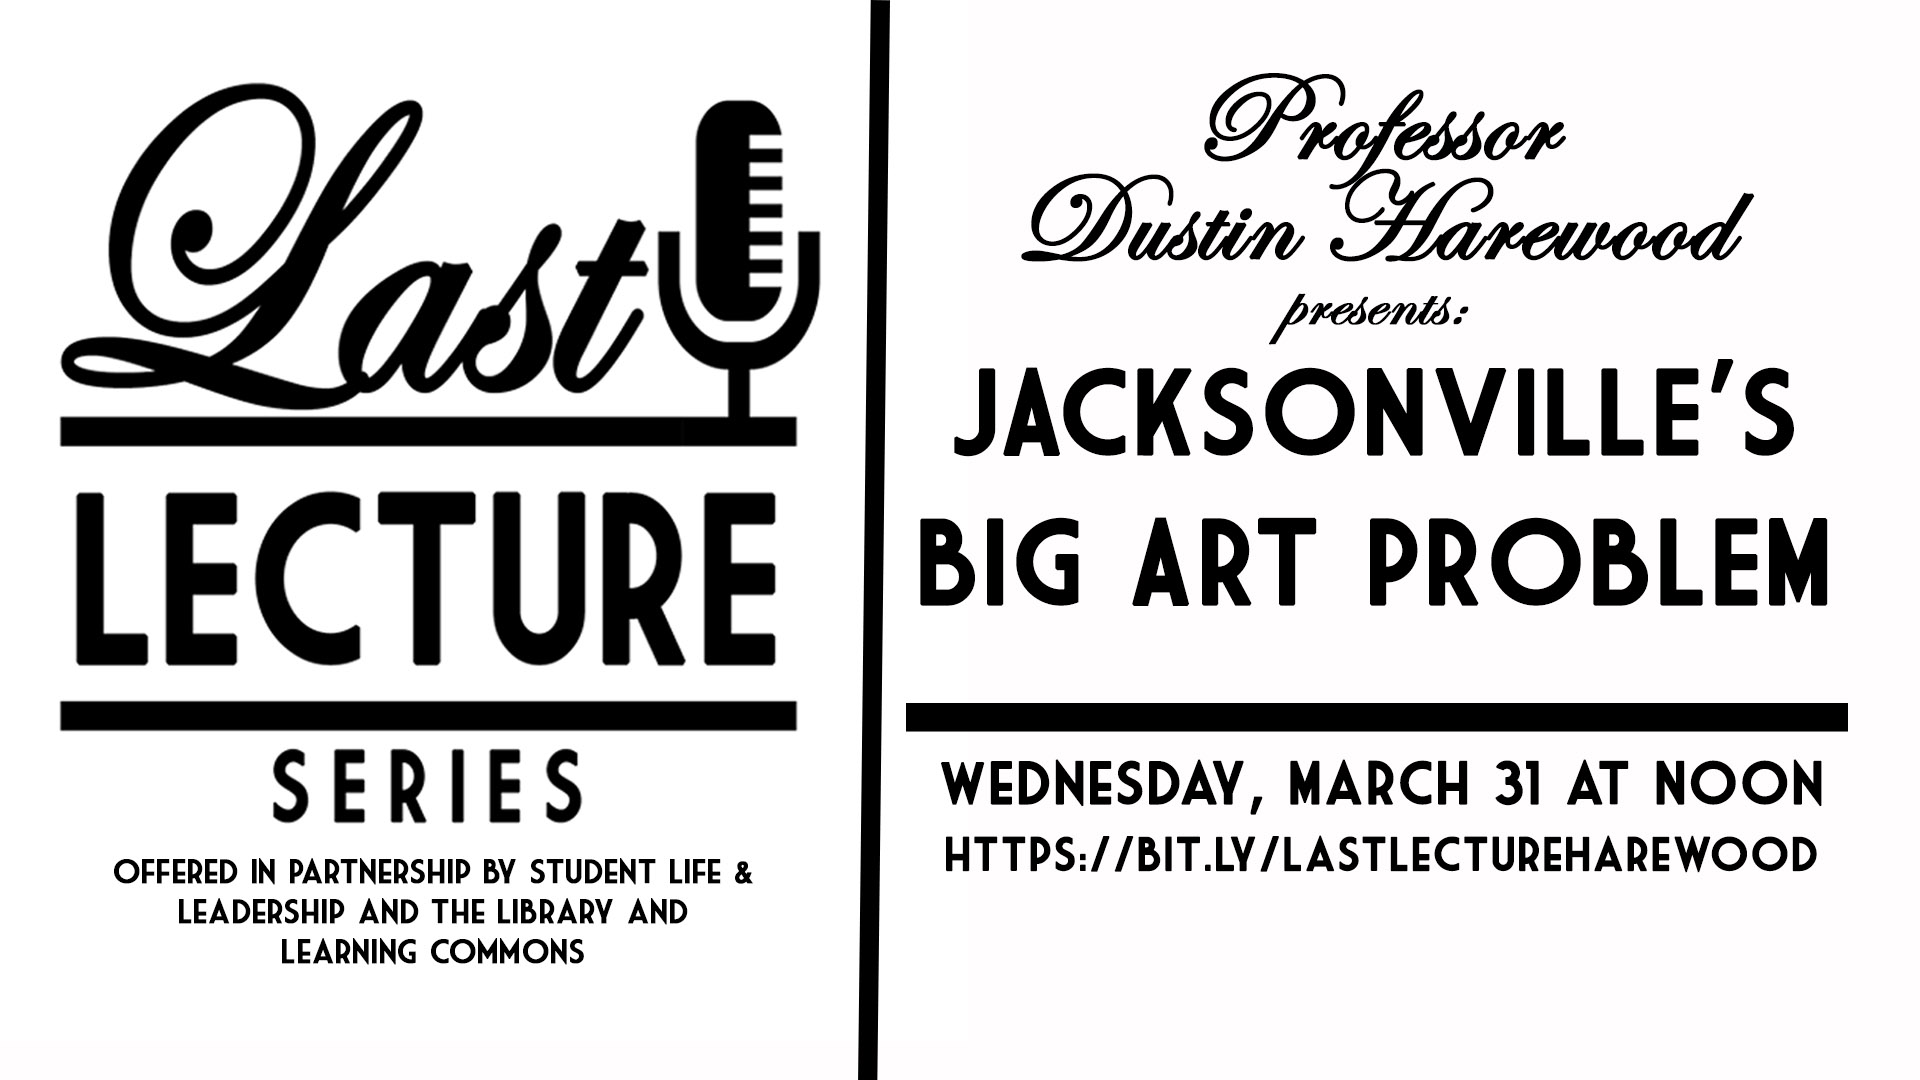 Last Lecture Series: Jacksonville's Big Art Problem by Prof. Dustin Harewood